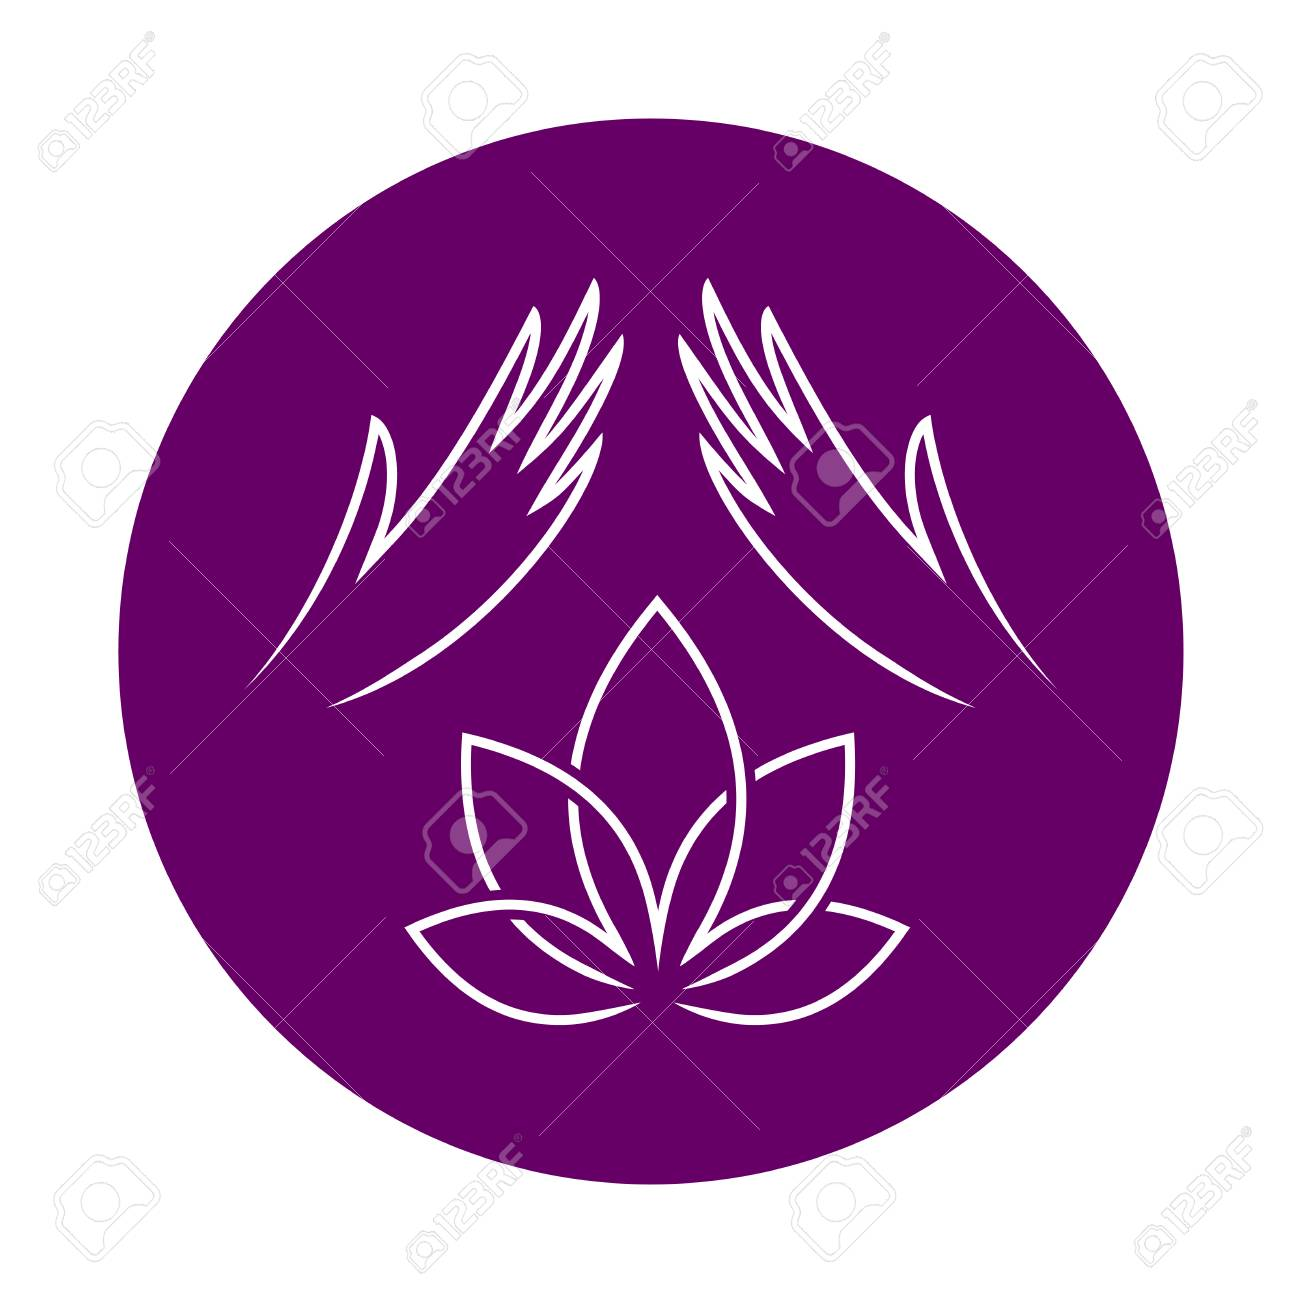 Massage With Elegant Woman Hands And Lotus Flower Massage Therapy